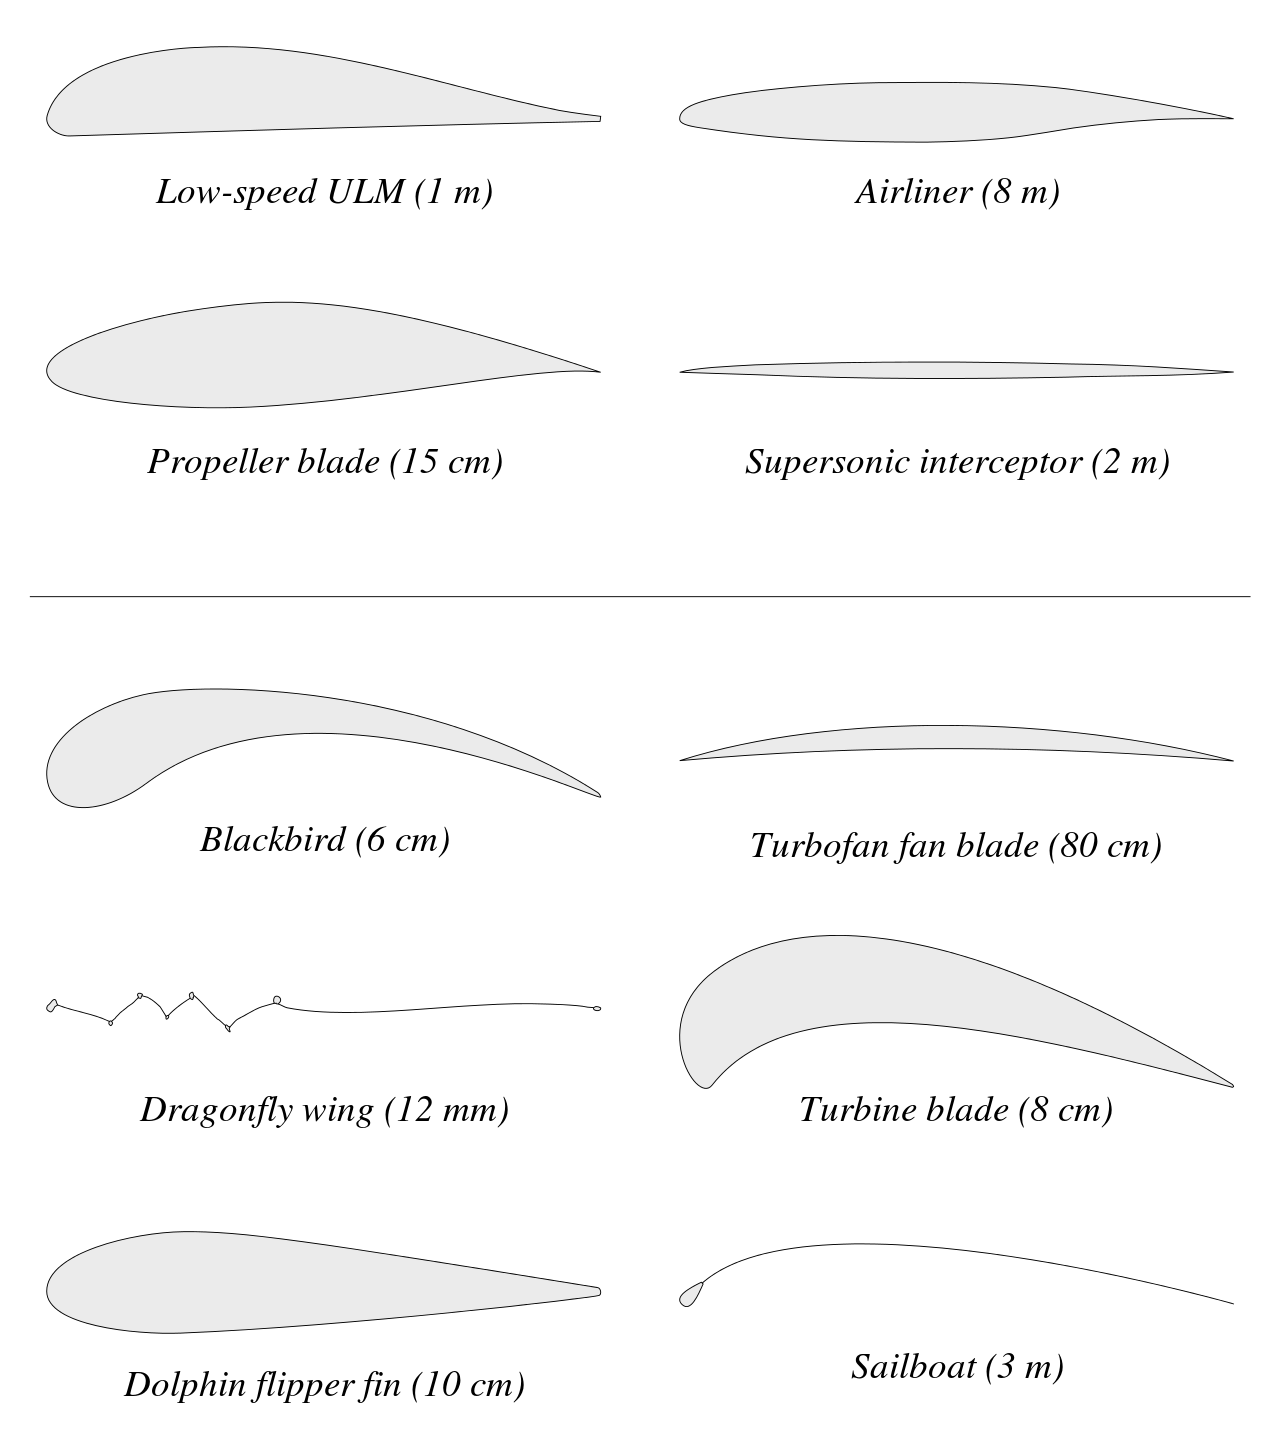 Examples of airfoils in nature and within various vehicles